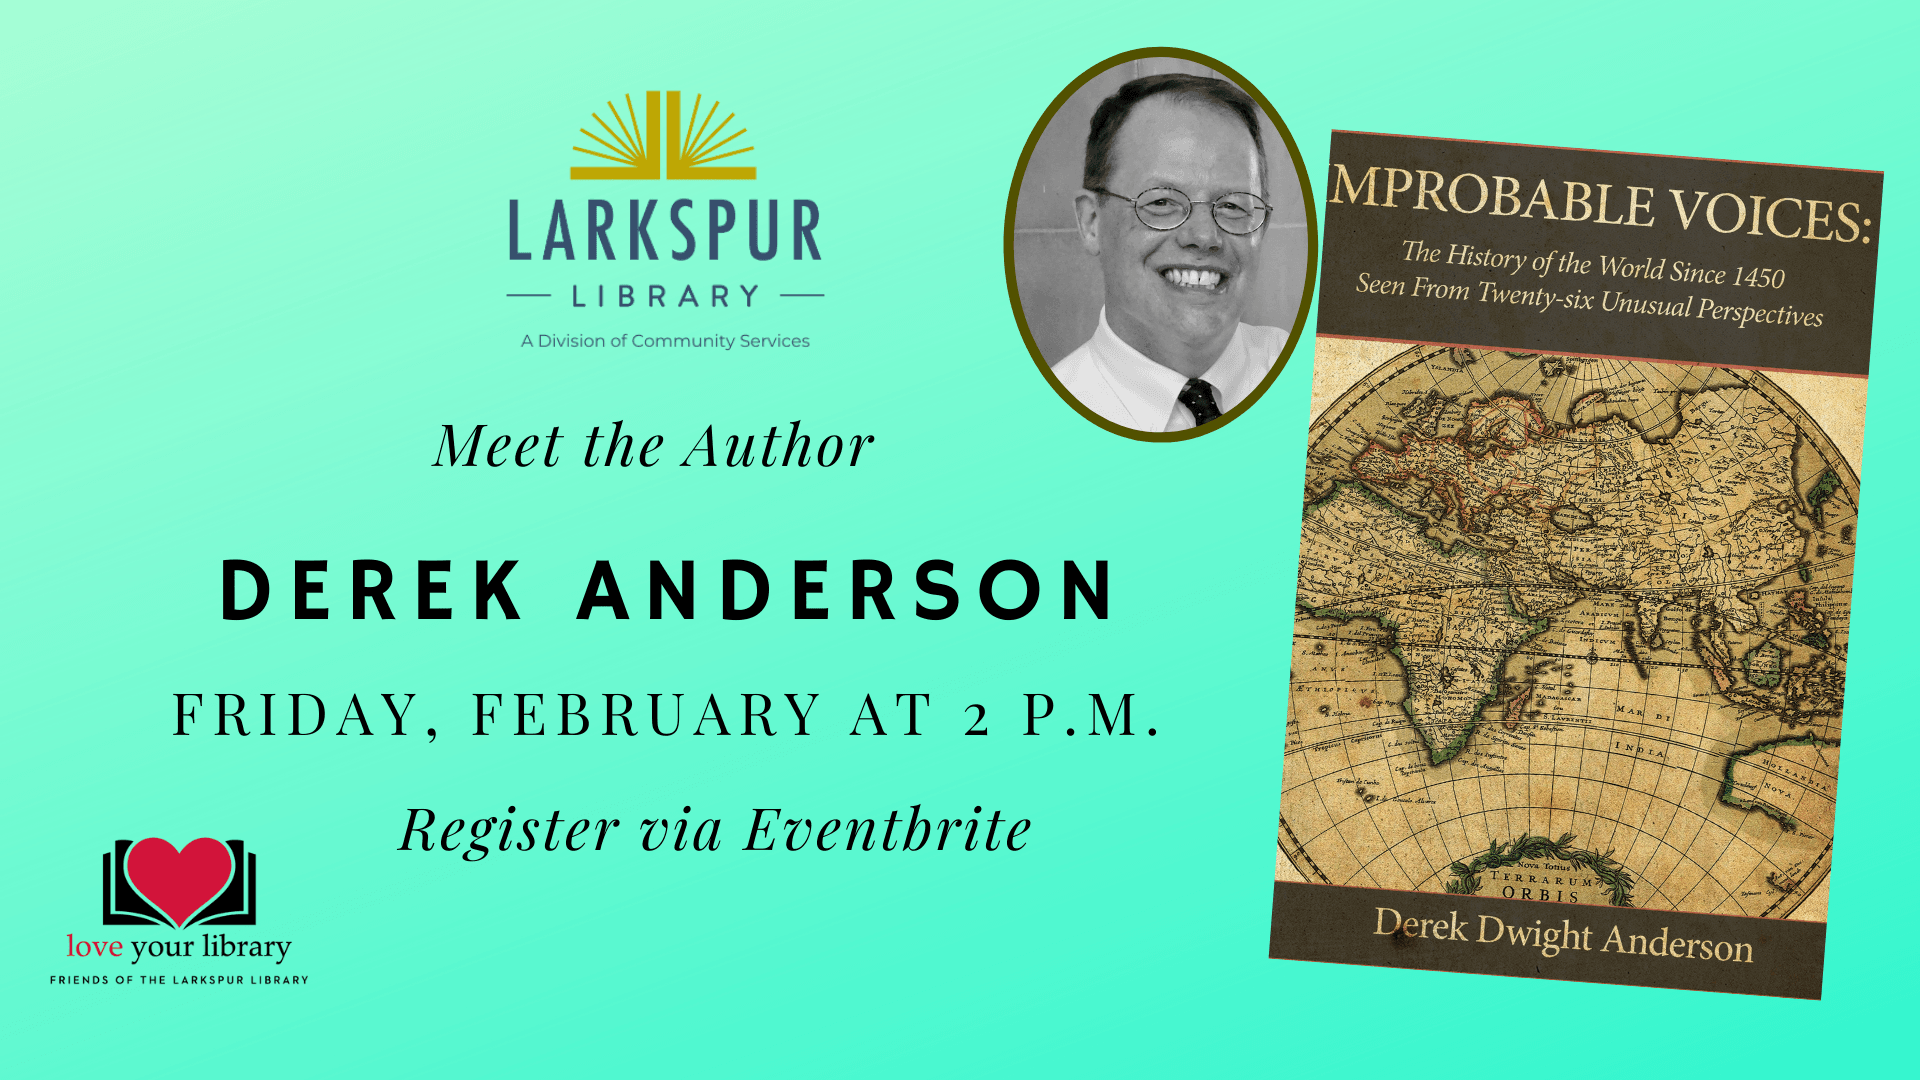 Meet the Author Derek Dwight Anderson Friday, February 26 at 2 pm